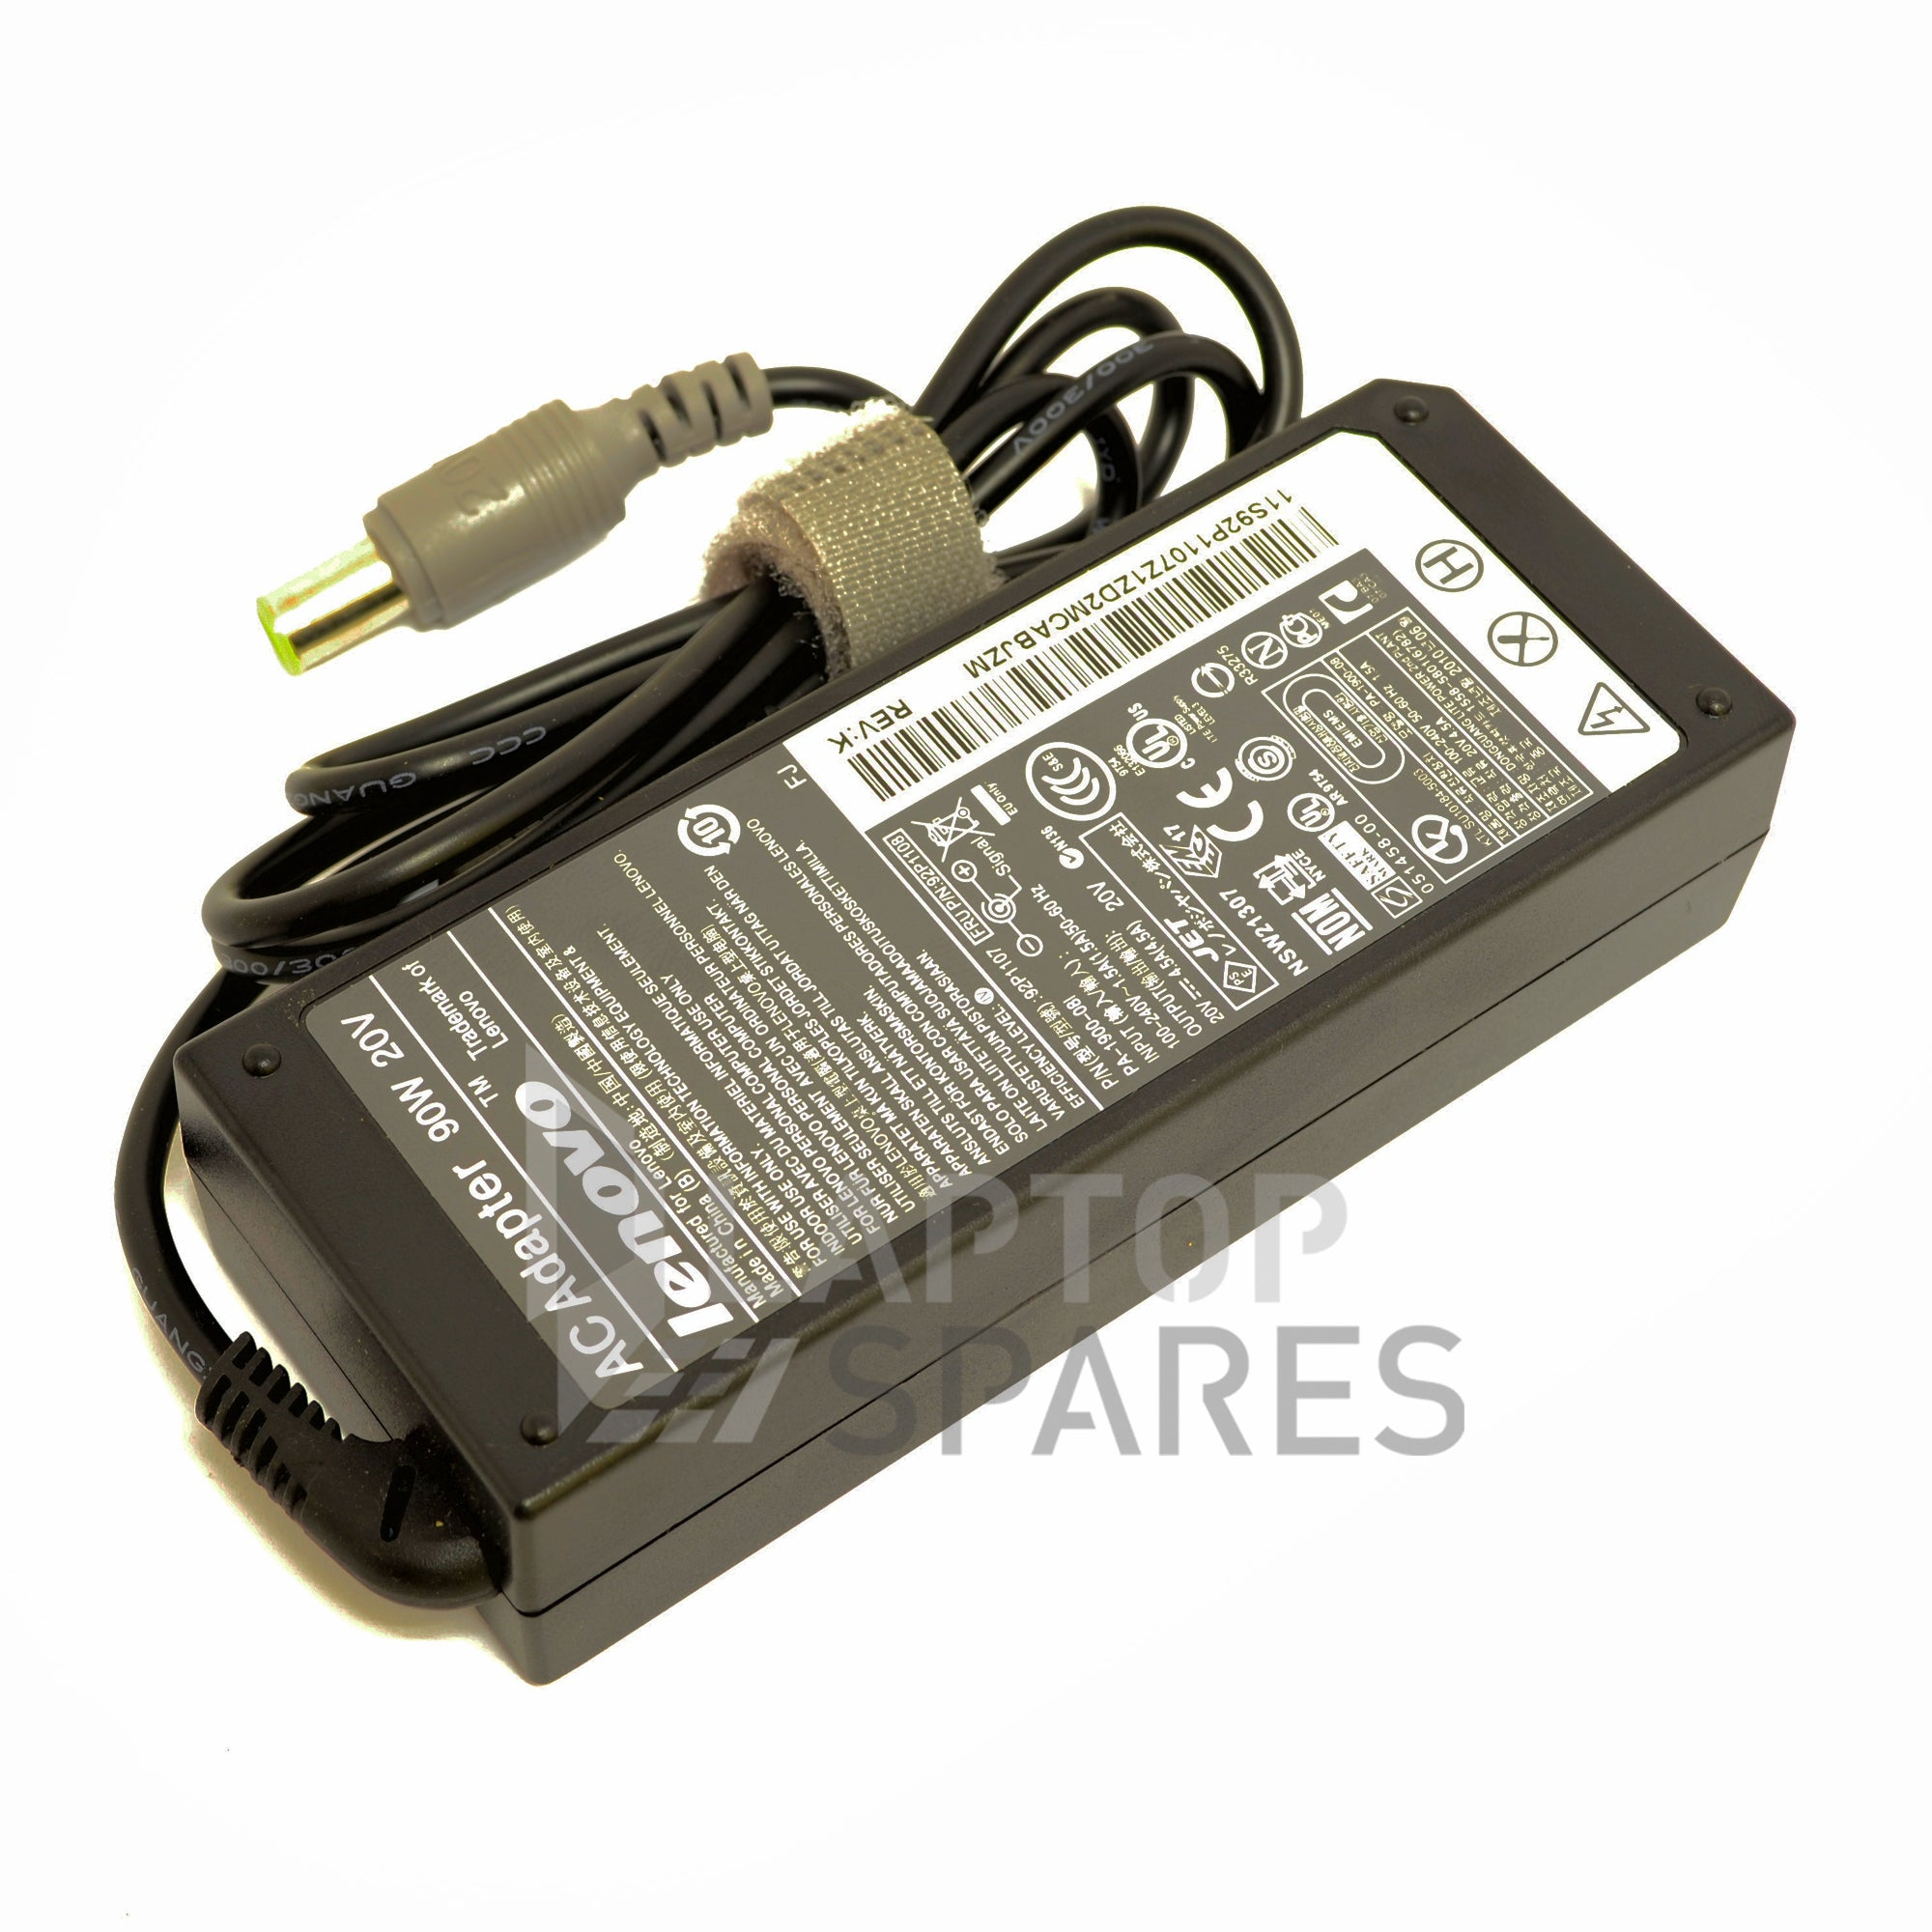 Lenovo 90W 20V 4.5A 7.9*5.5mm Laptop AC Adapter Charger